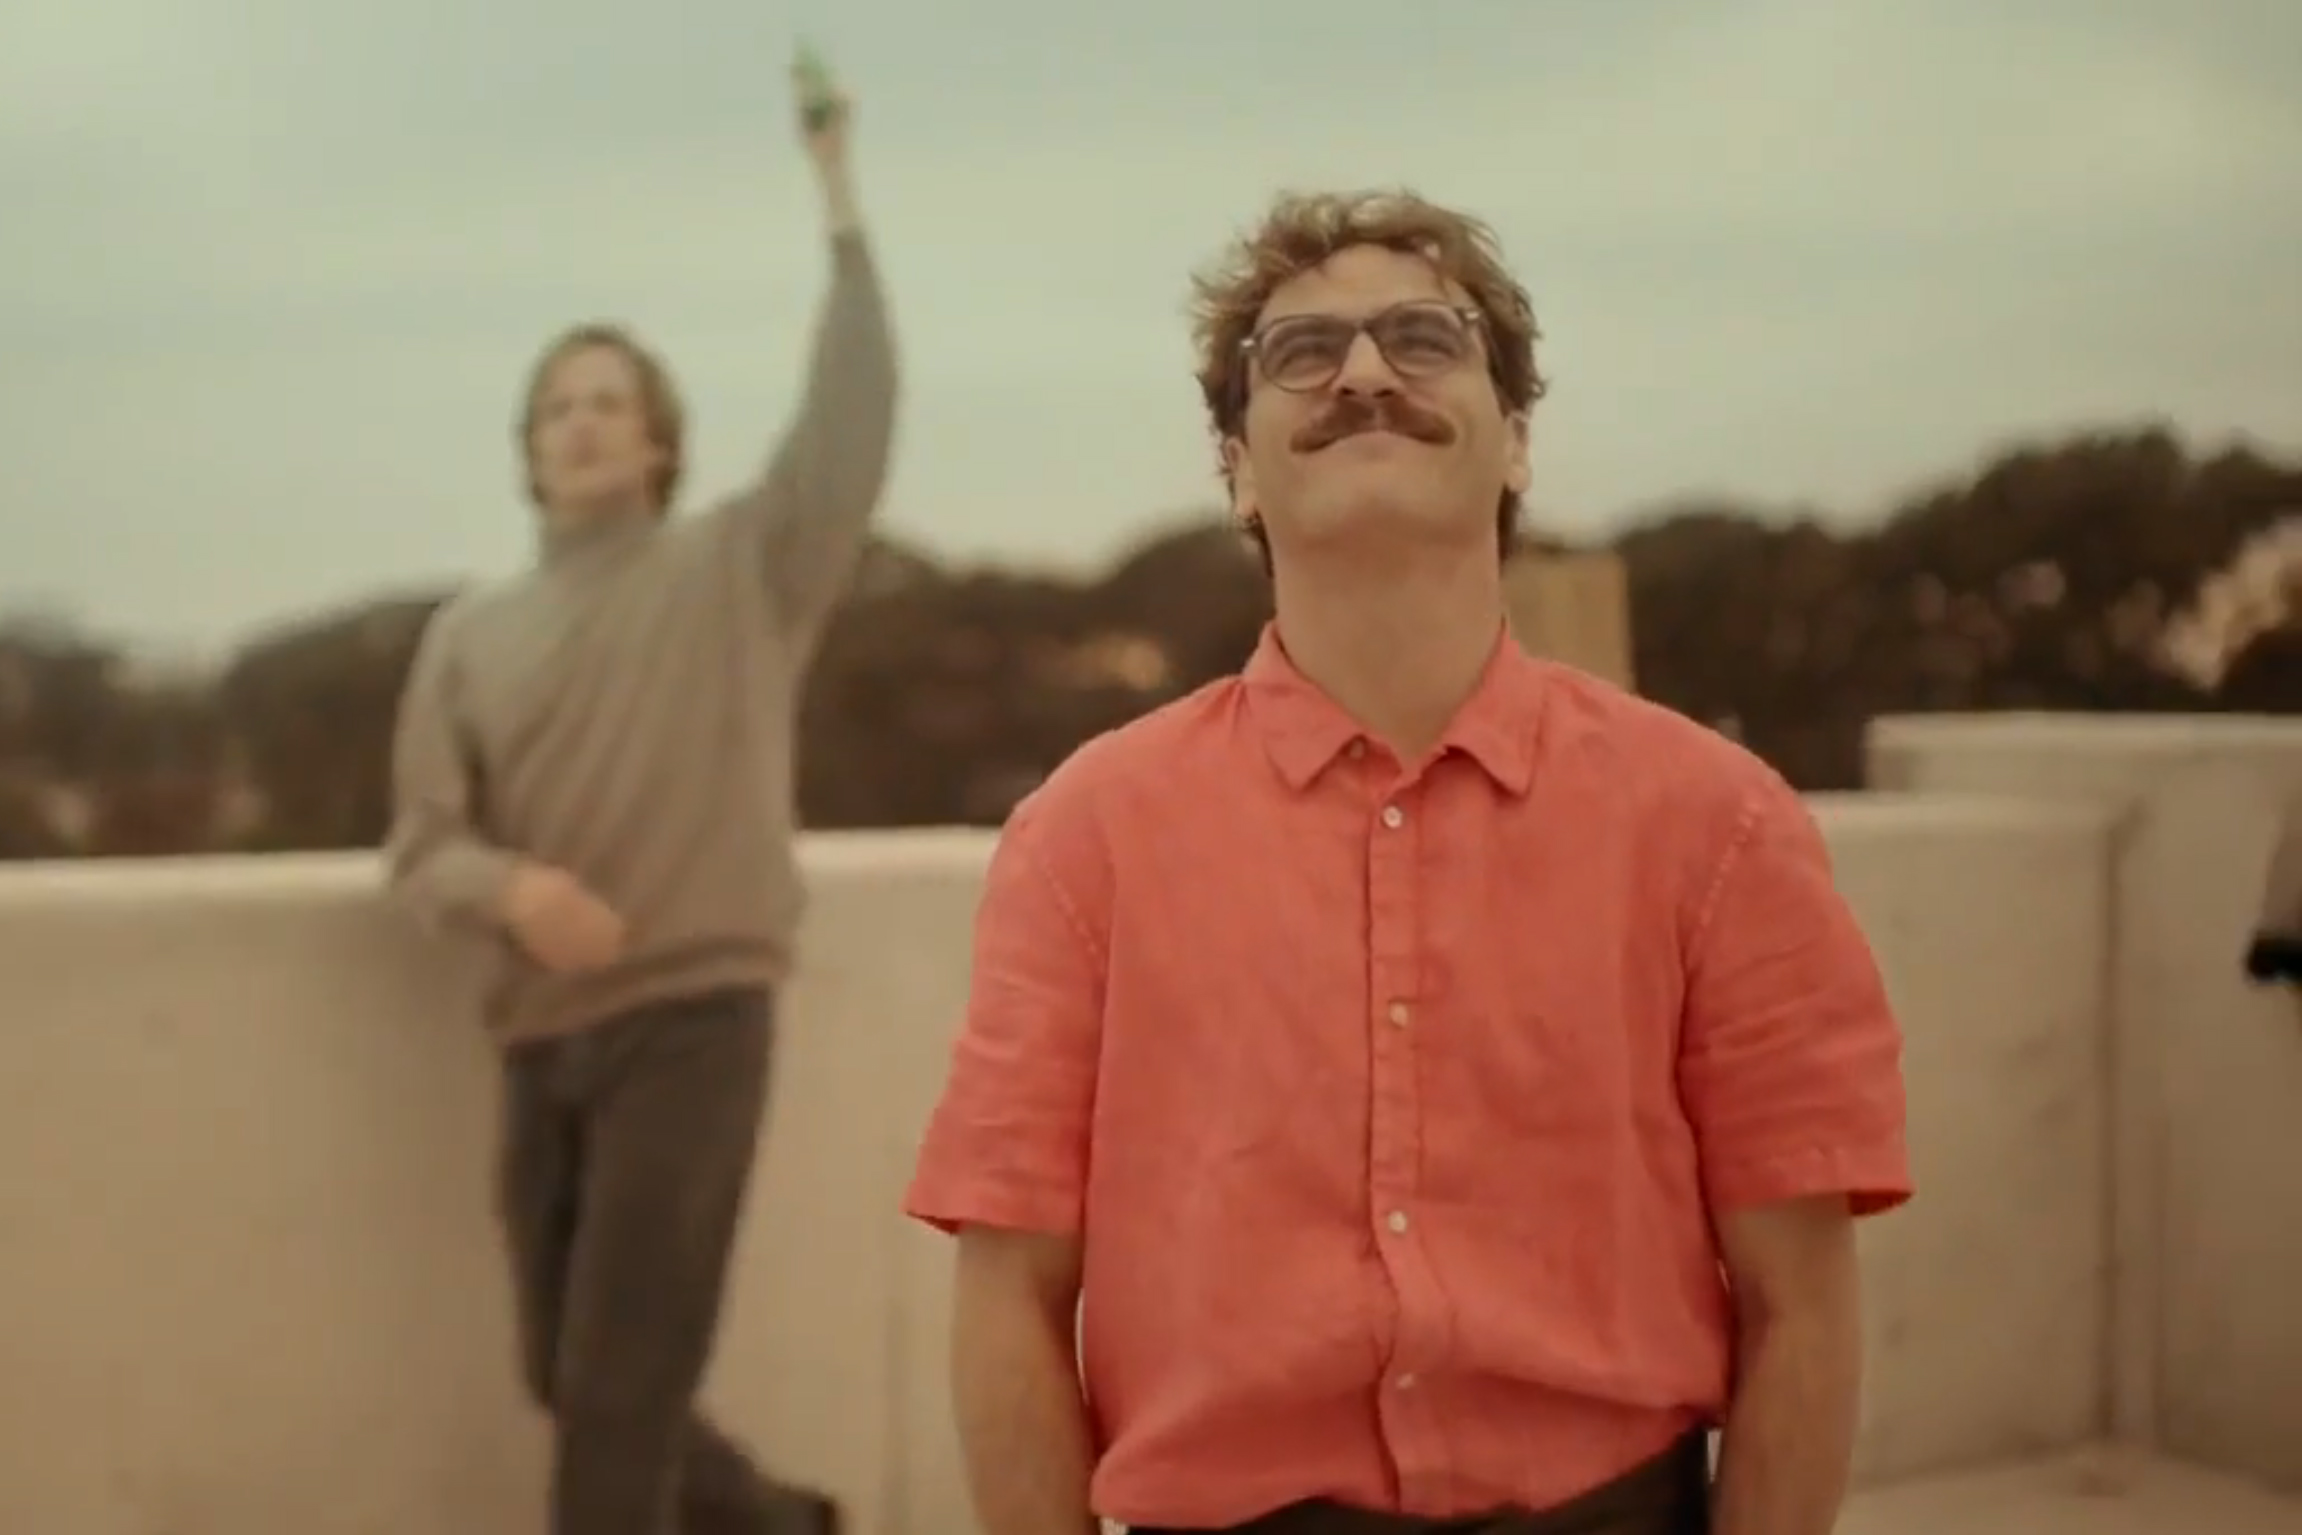 Joaquin Phoenix & Scarlett Johansson Star in Spike Jonze's New Film 'Her'